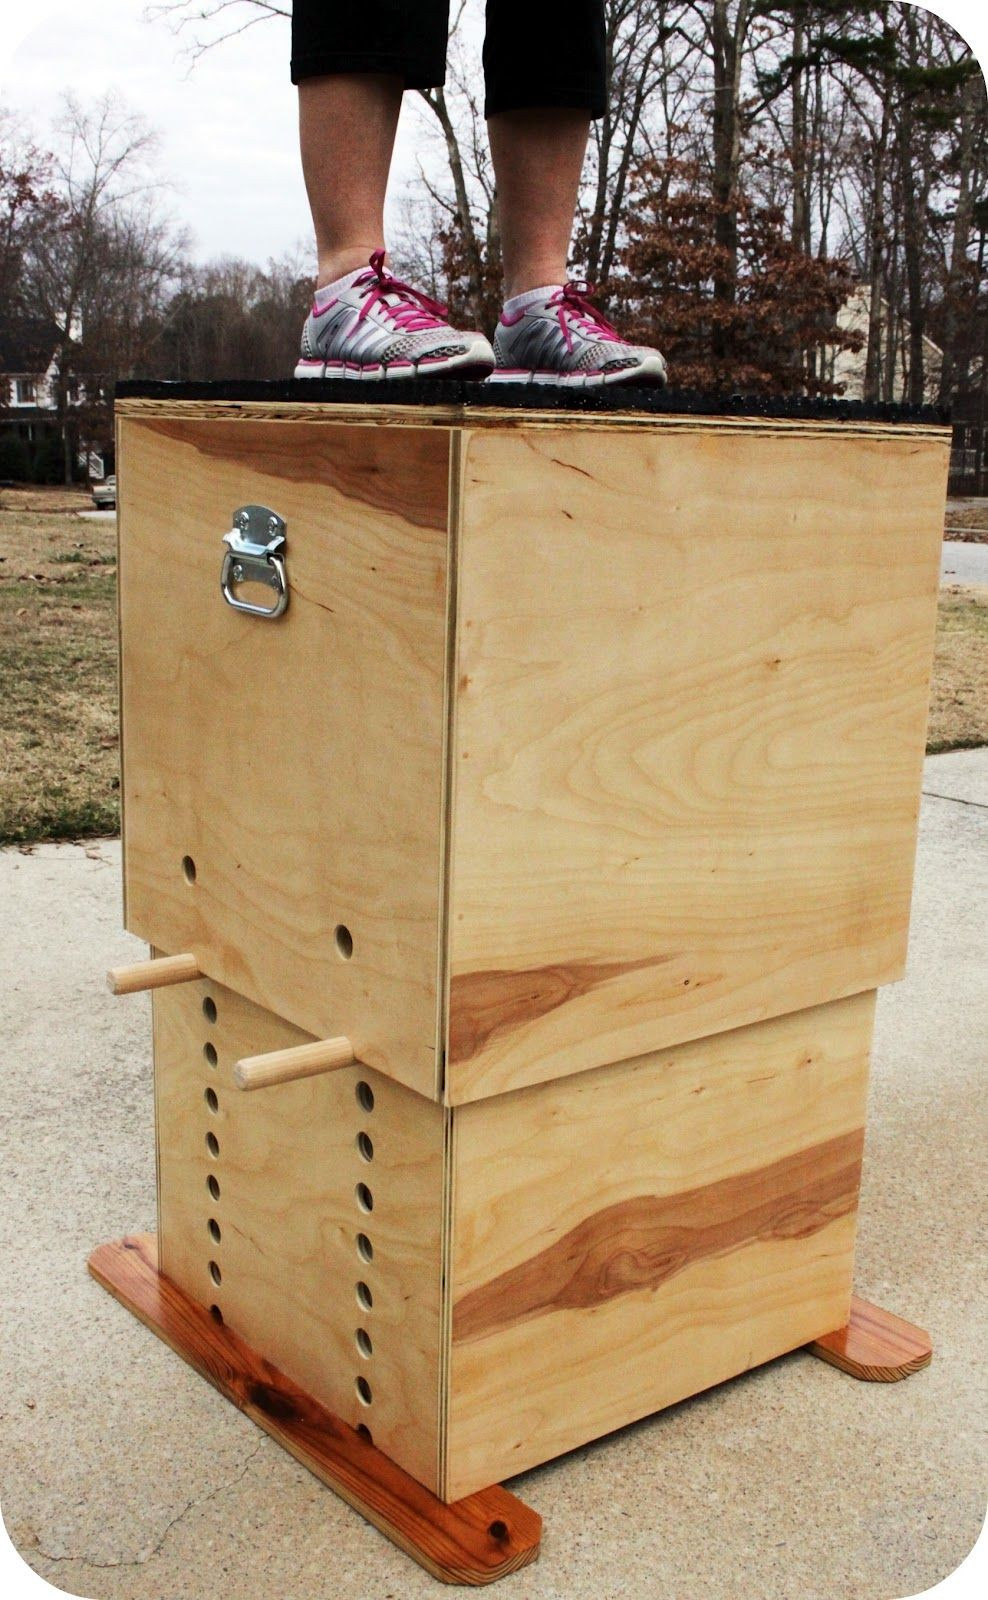 Best ideas about DIY Plyometric Box . Save or Pin TrendyToolbox ADJUSTABLE WOODEN PLYO BOX Now.